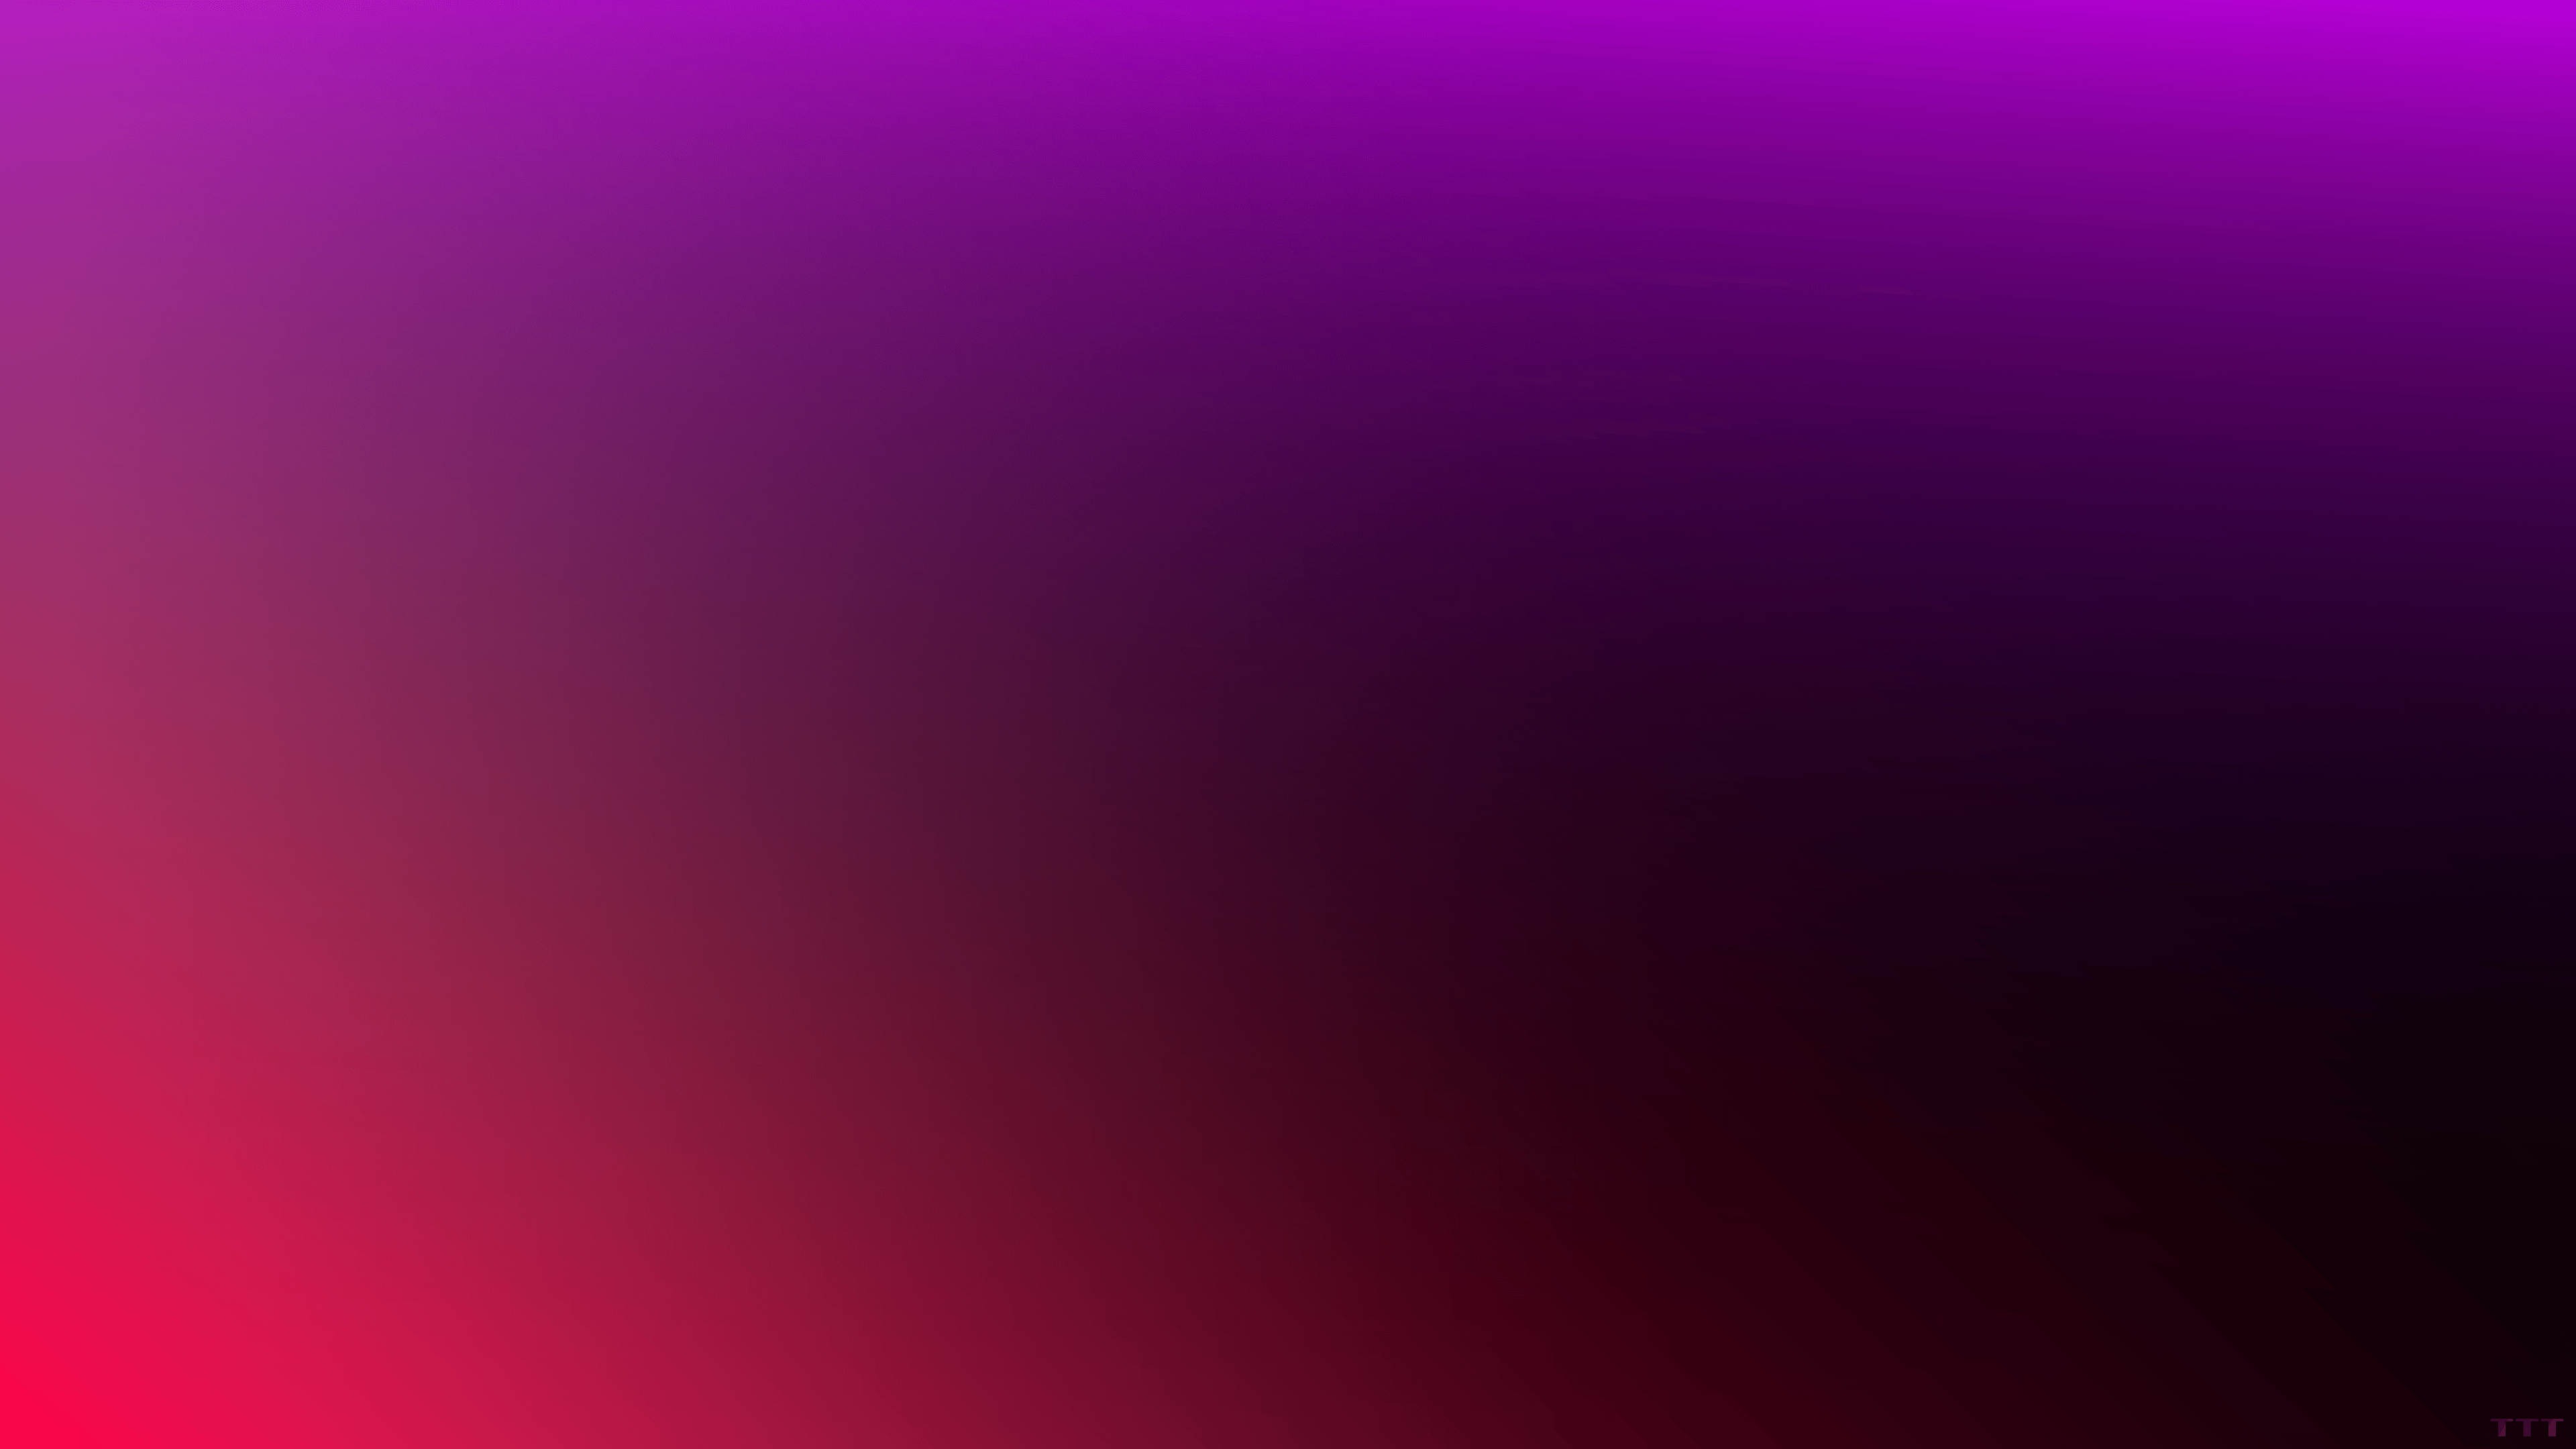 Descargar 3840x2160 Violet Gradient Wallpapers para UHD TV